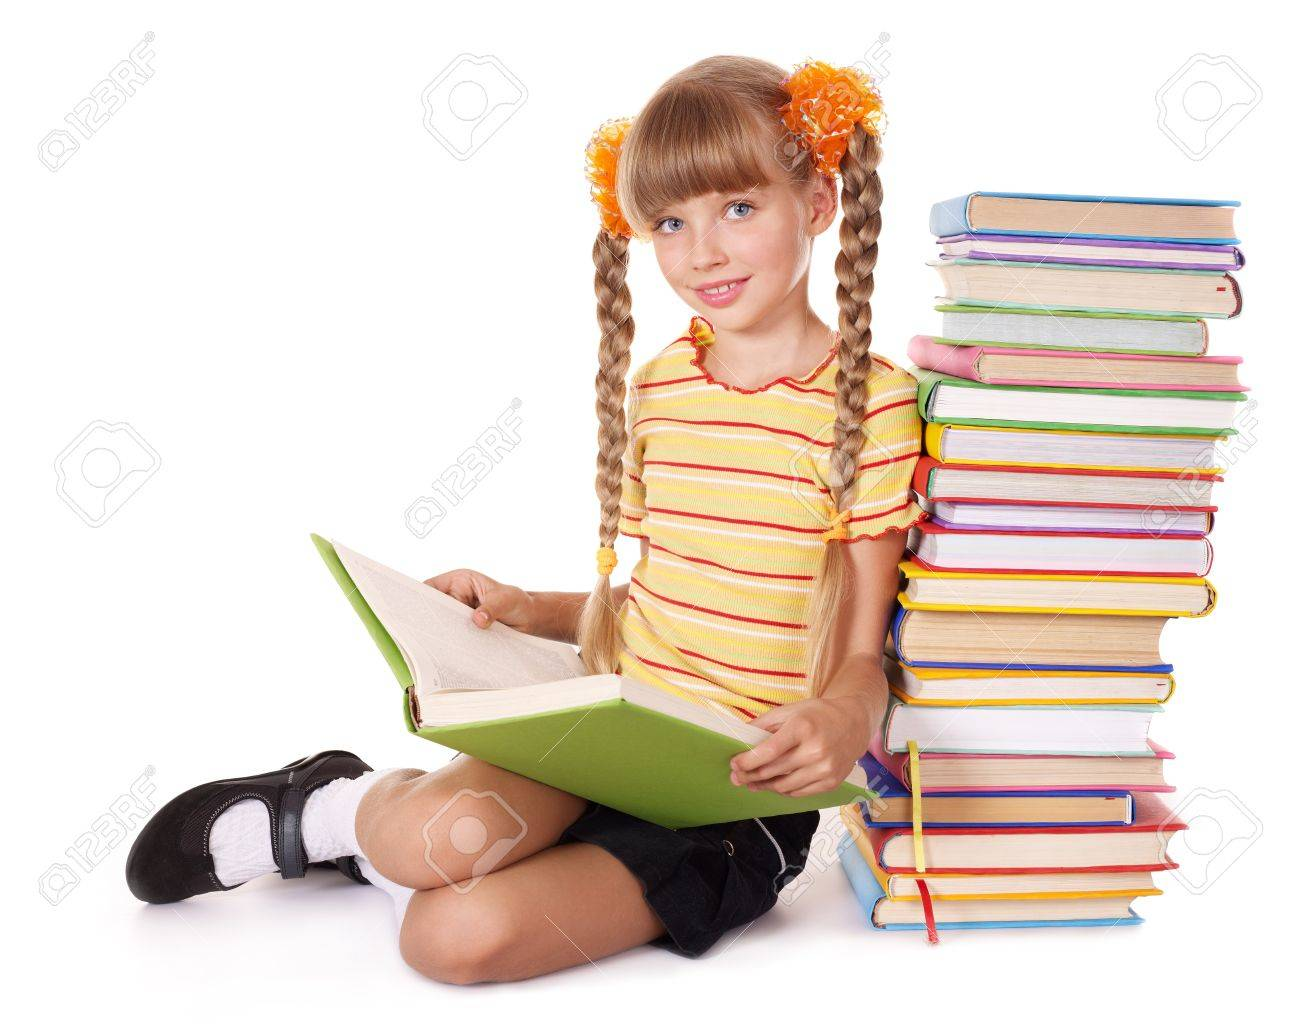 Little girl  reading  pile of books. Isolated. Stock Photo - 7779699